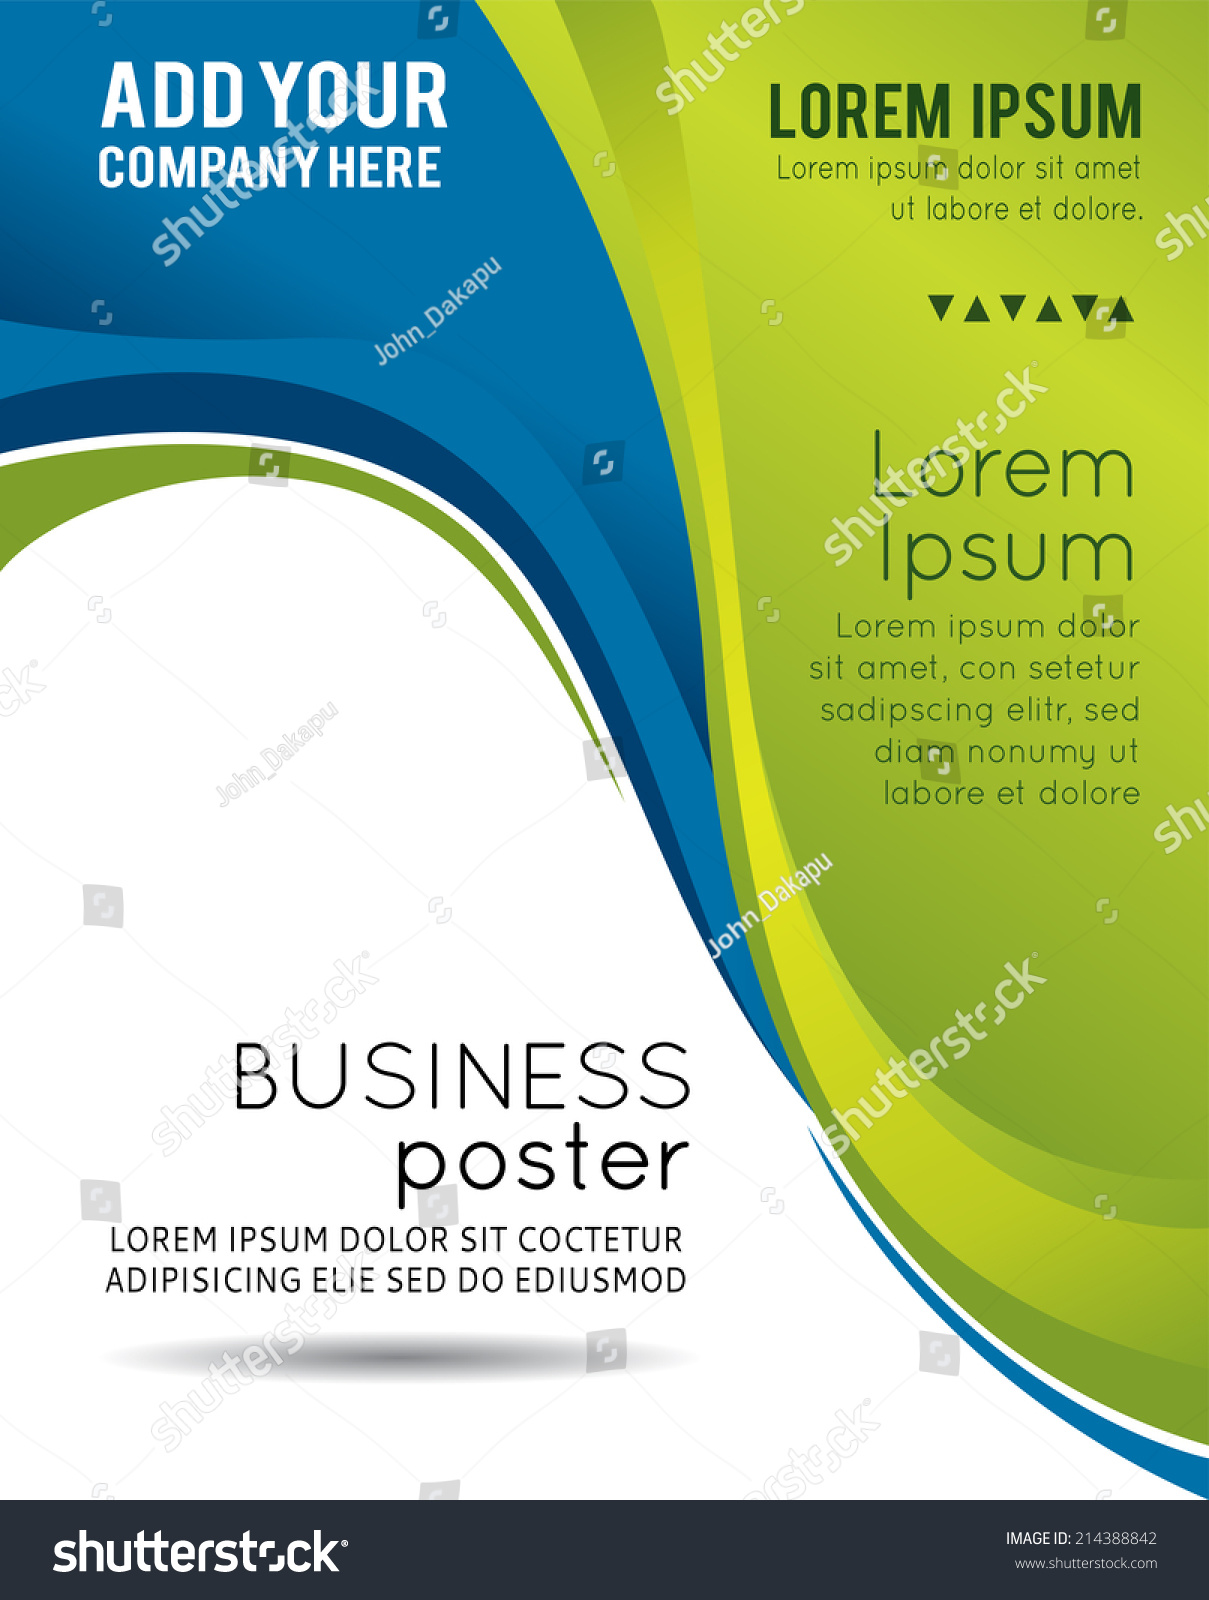 Design banner in publisher - Professional Business Design Layout Template Or Corporate Banner Design Magazine Cover Publishing And Print